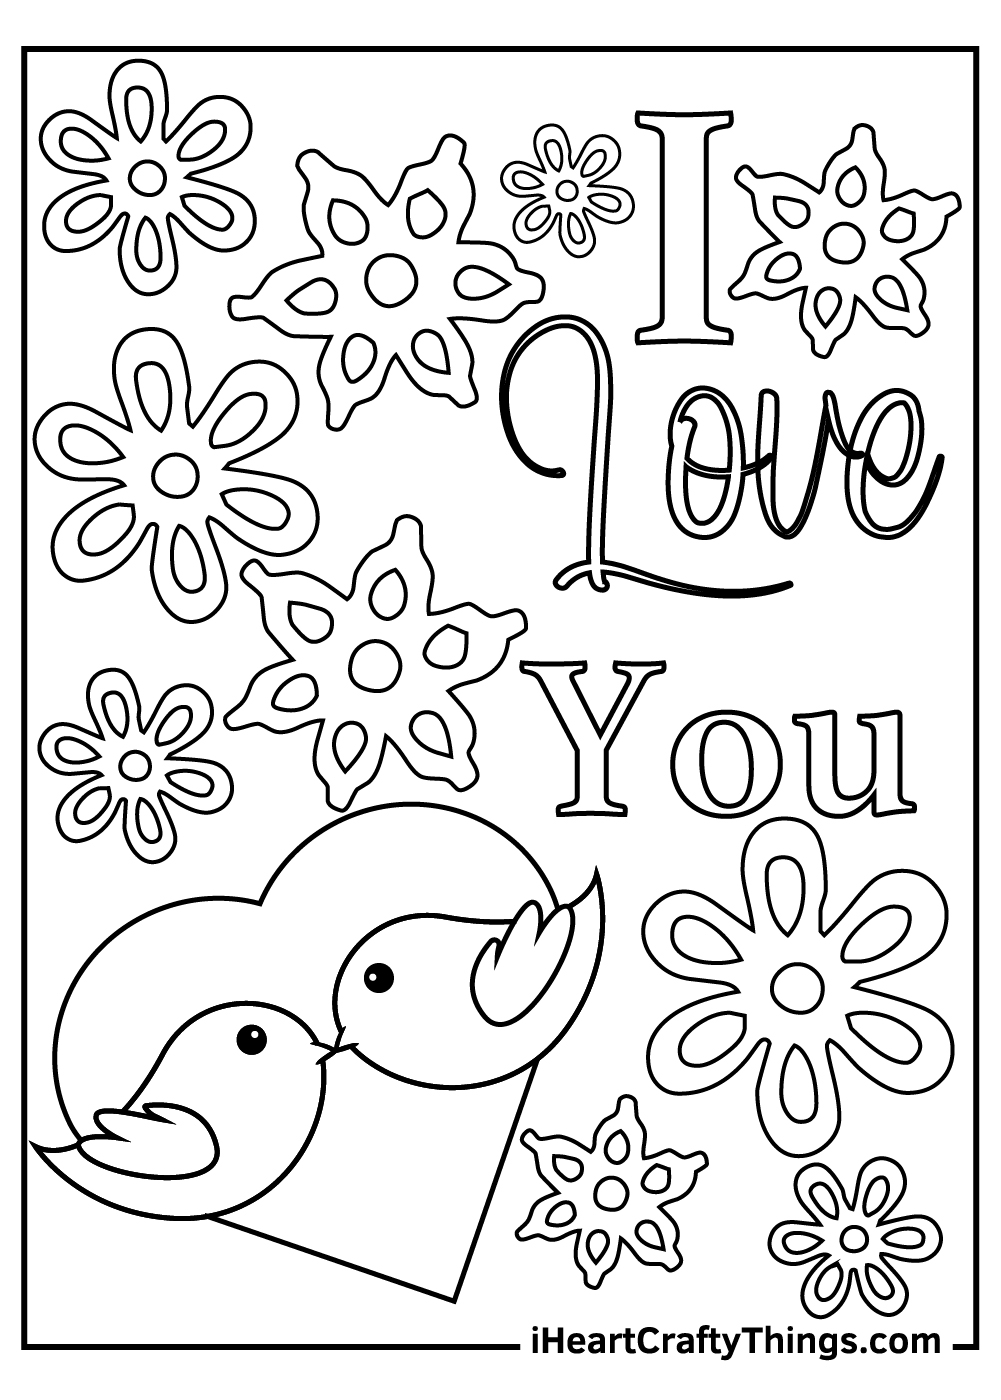 I love you coloring pages for kids